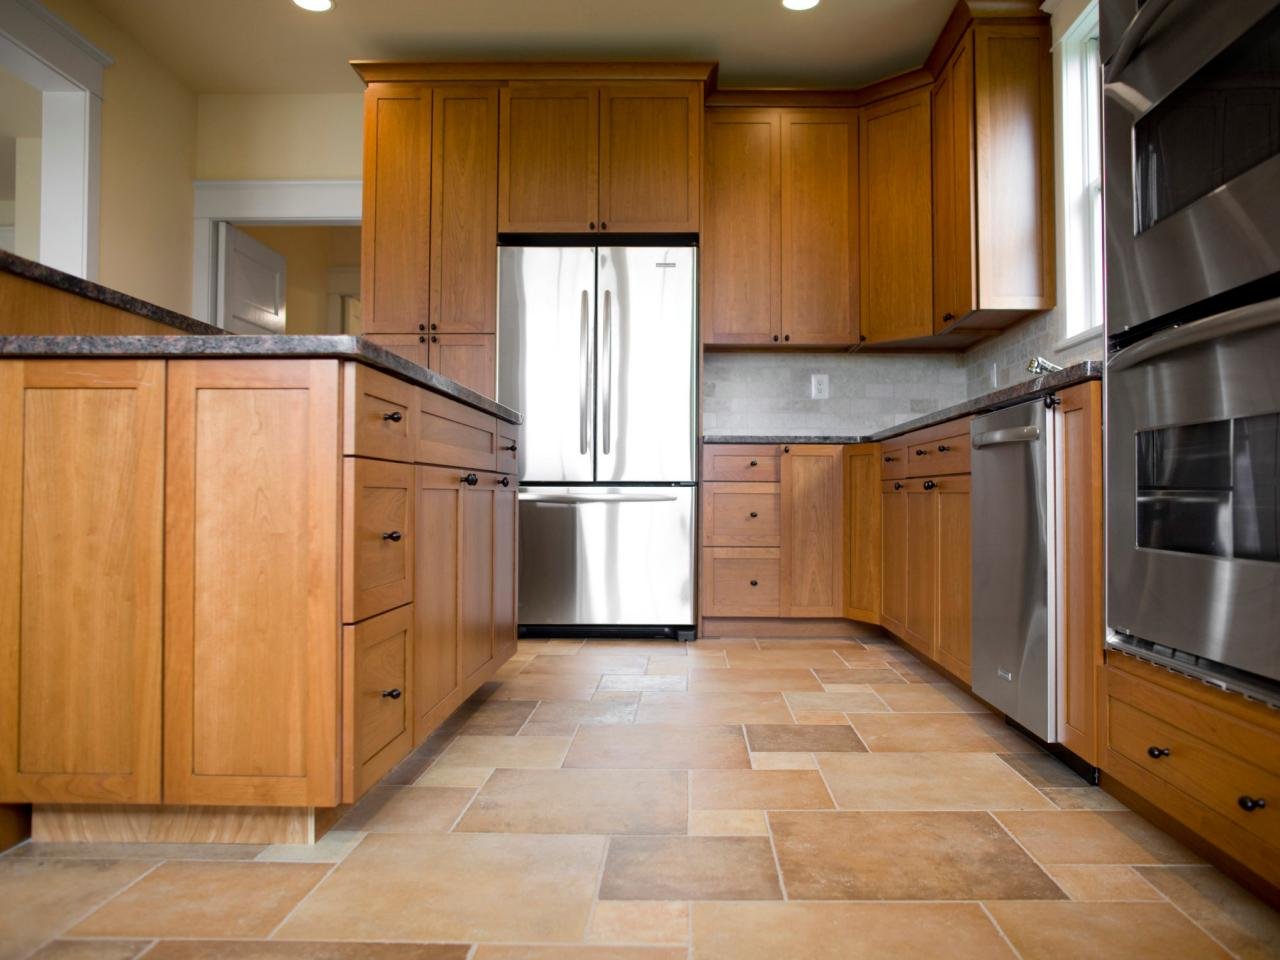 Best Flooring In Kitchen Choose The Best Flooring For Your Kitchen Hgtv